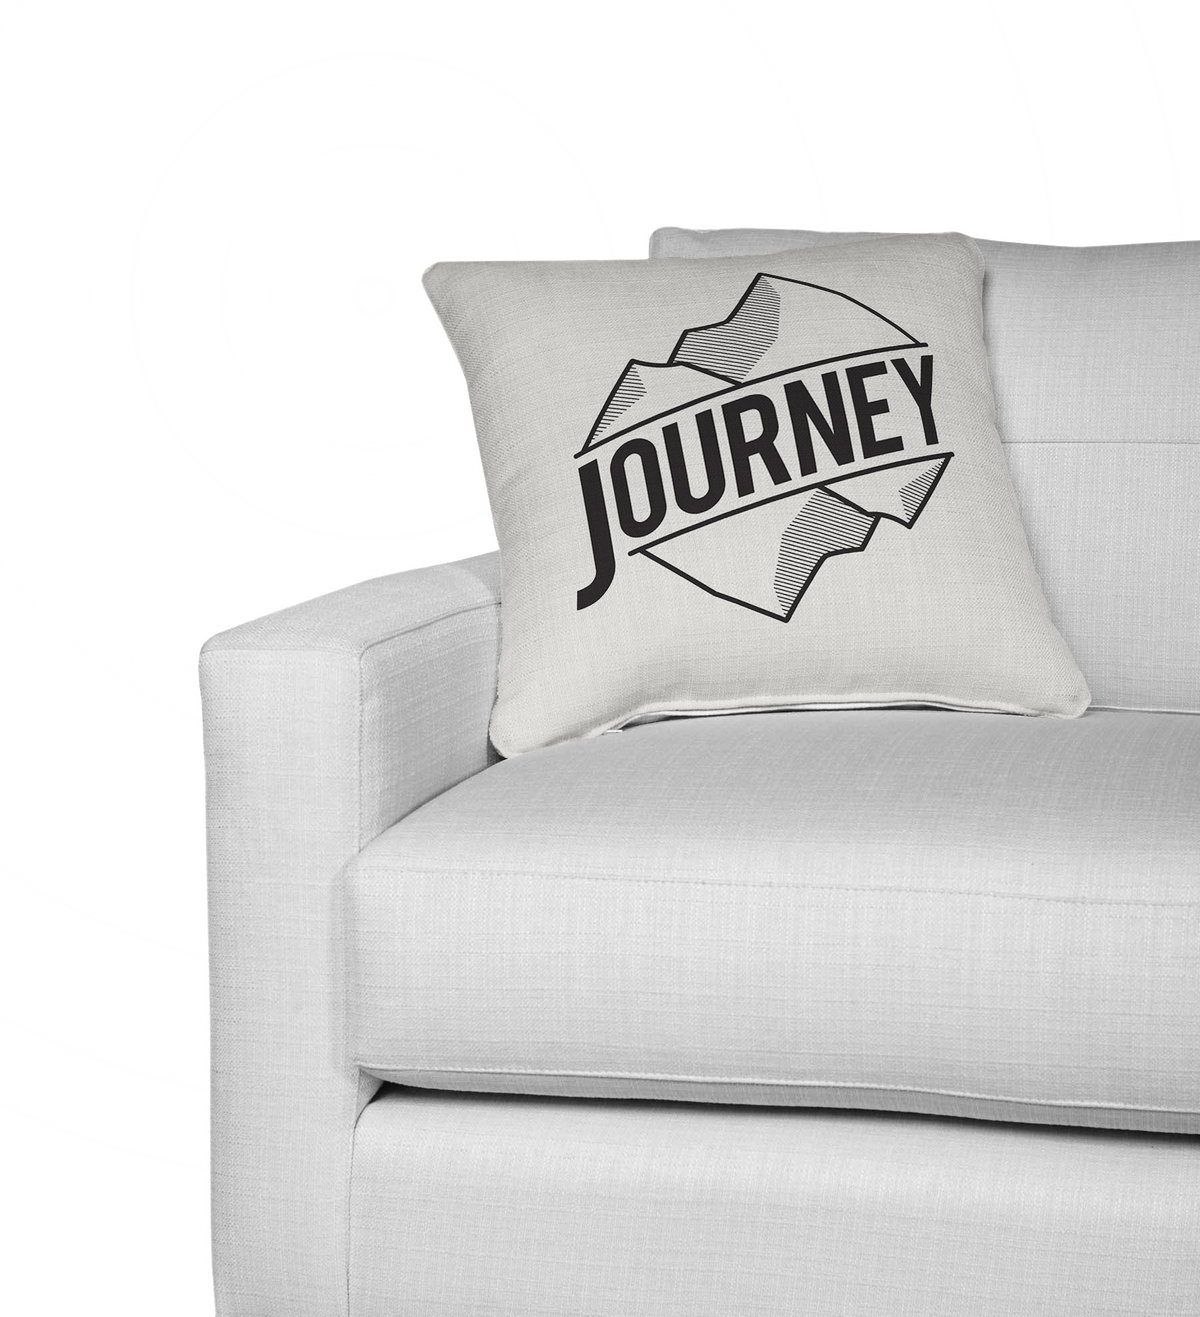 Journey 2 in 1 Double sided contemporary decorative cushion cover-Home Decor - Decorative Accents - Pillows & Throws - Decorative Pillows-Maison d'Elite-14x14-Très Elite